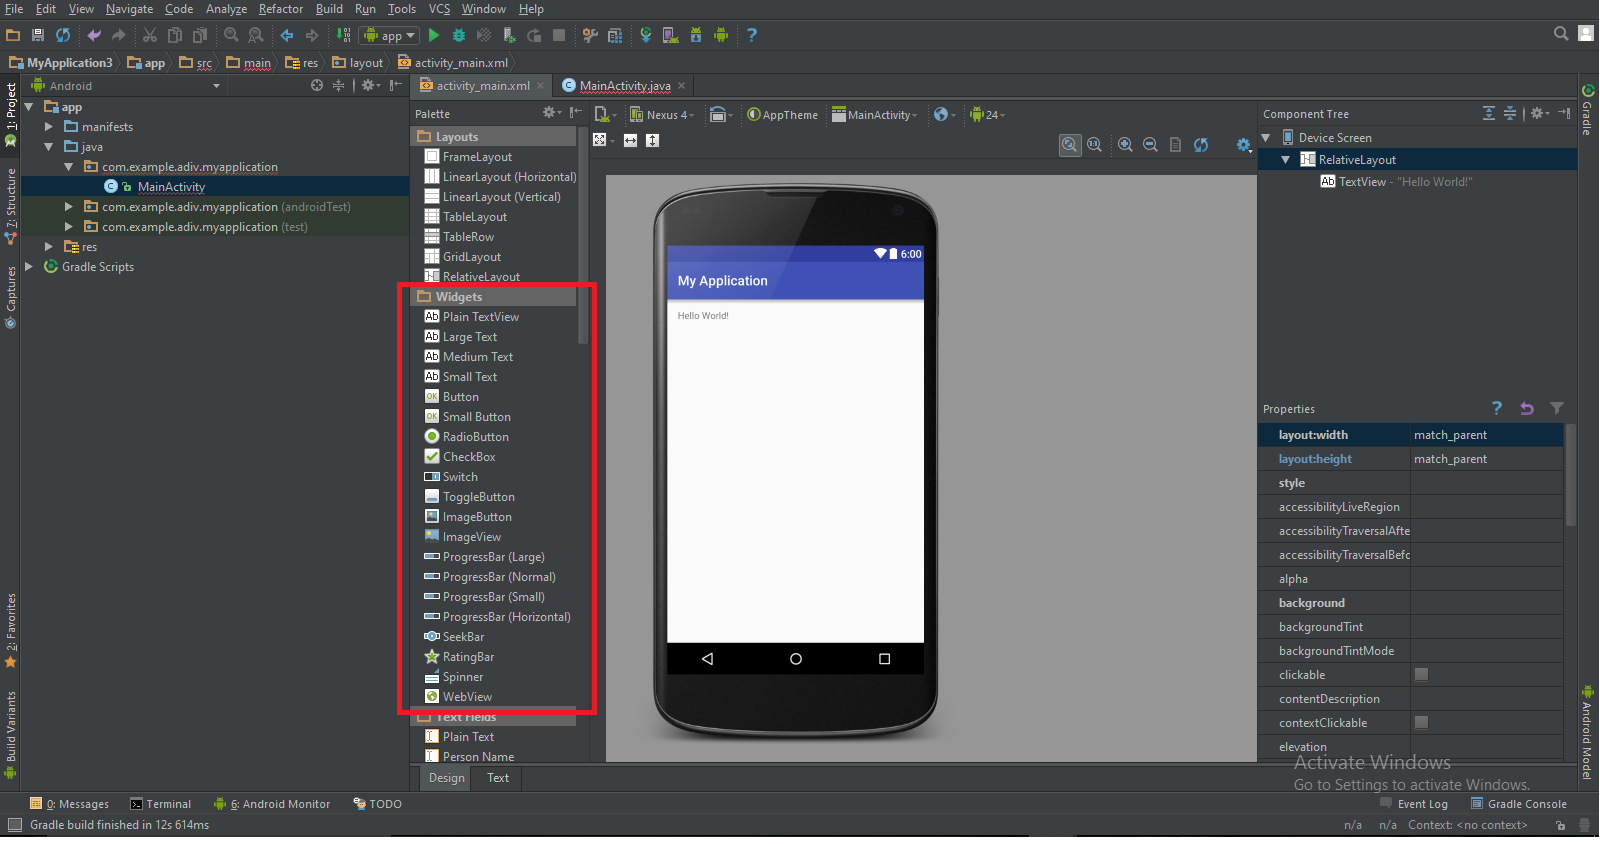 Android Studio: How to Create and Use Widgets | Pluralsight